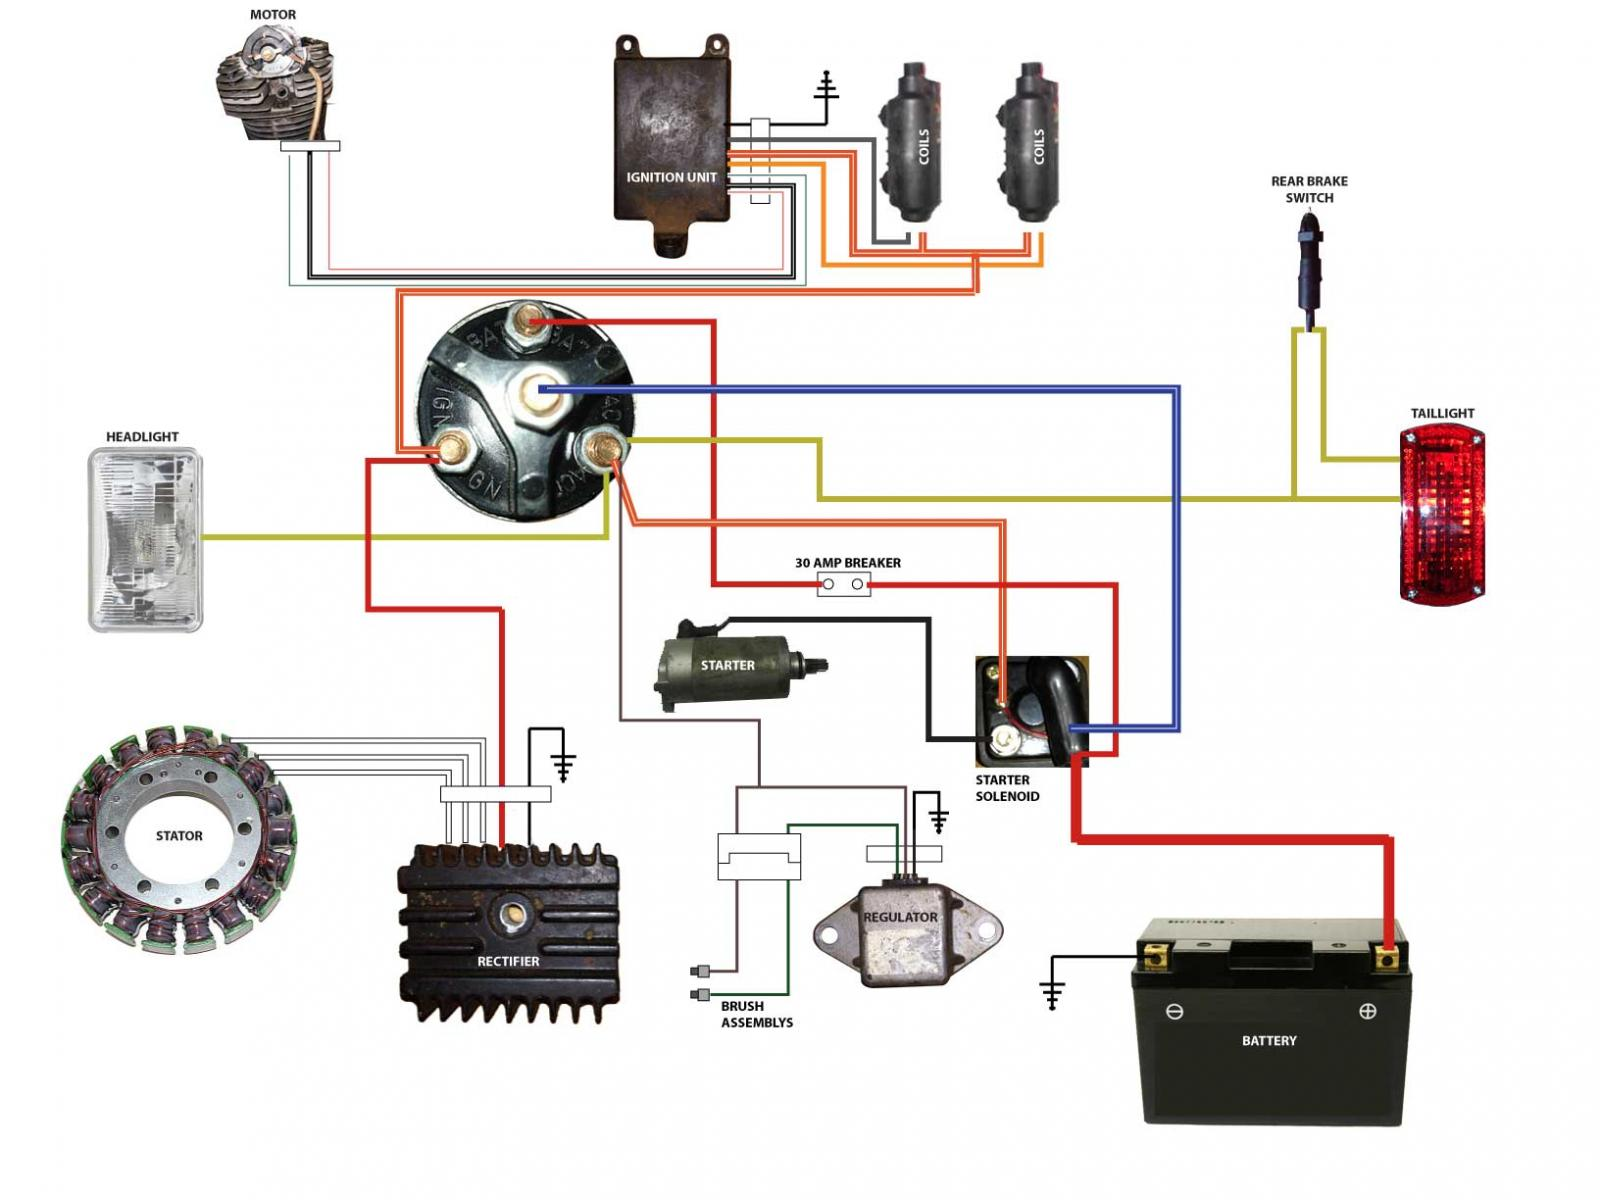 scooter ignition switch wiring diagram liftmaster garagentor ffner yamaha sr500 motorcycle harness